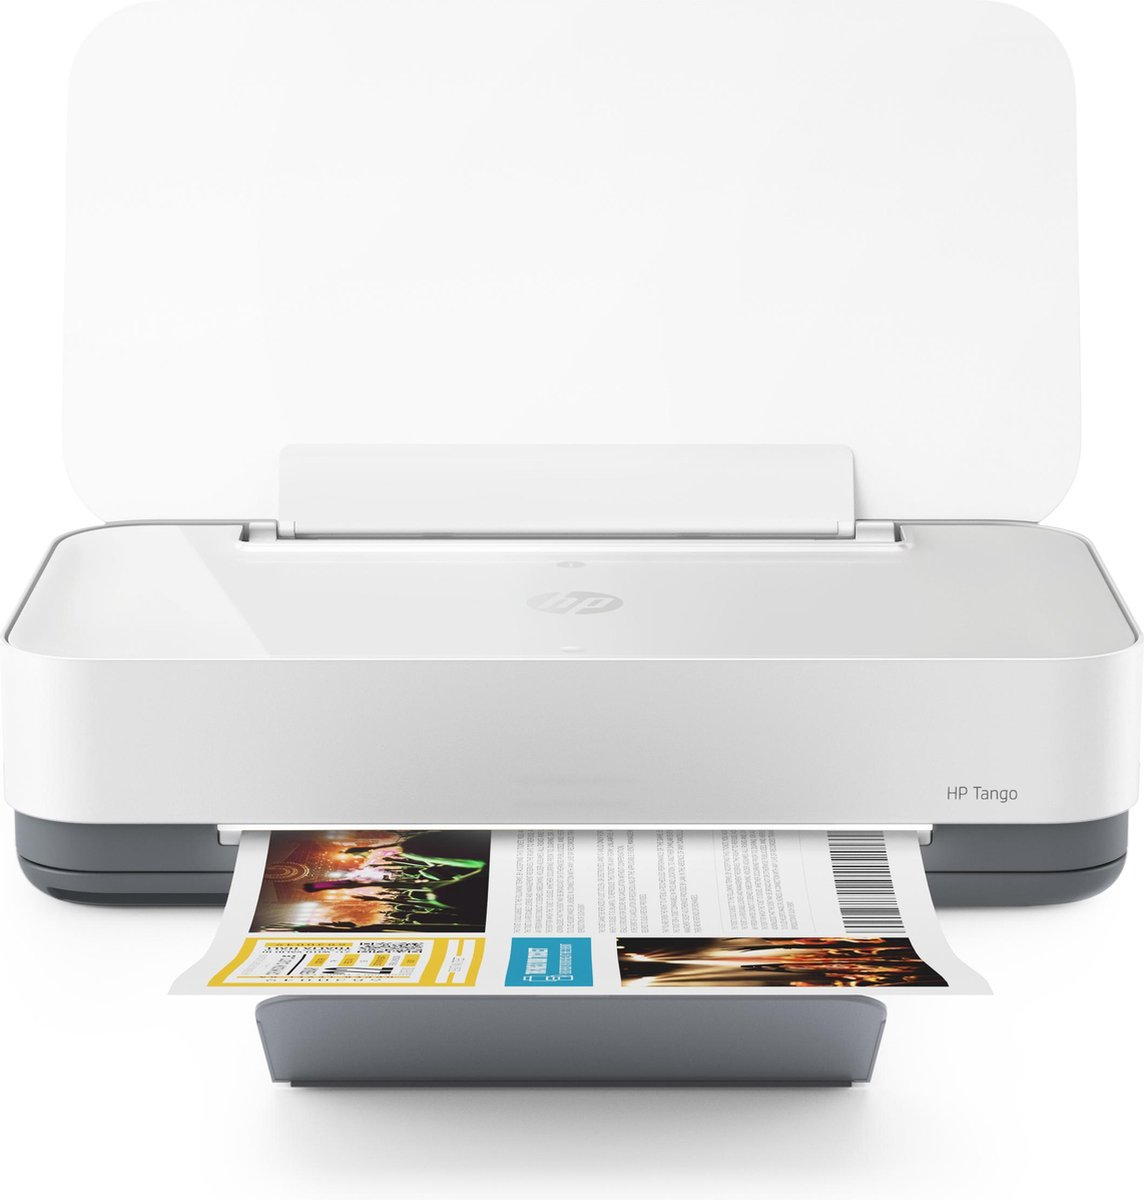 HP Tango – Smart Home Printer